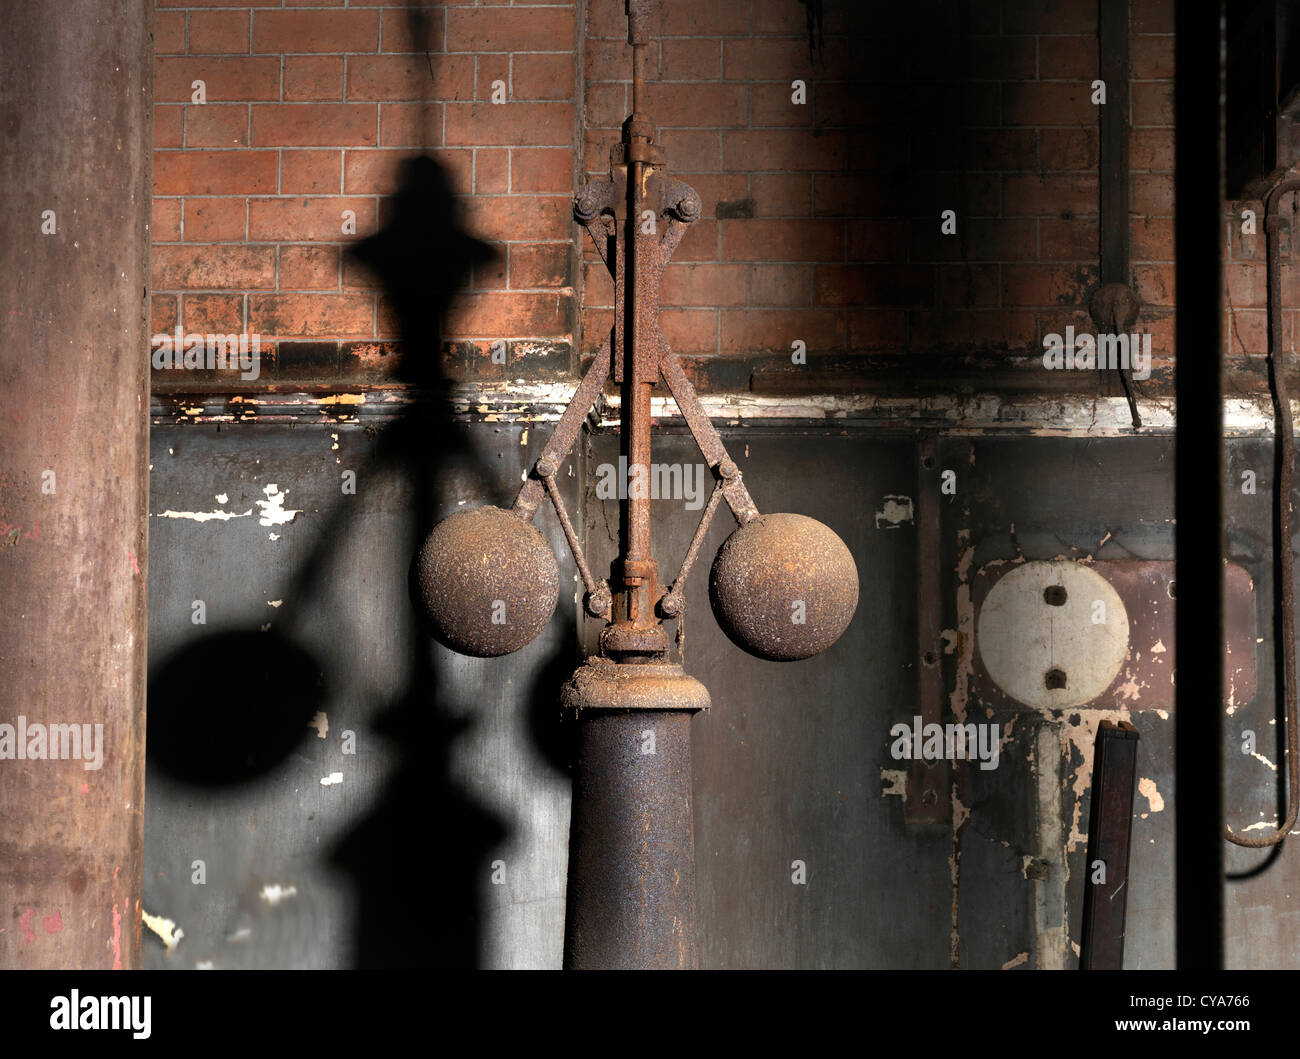 Claymills Pumping Station - Stock Image